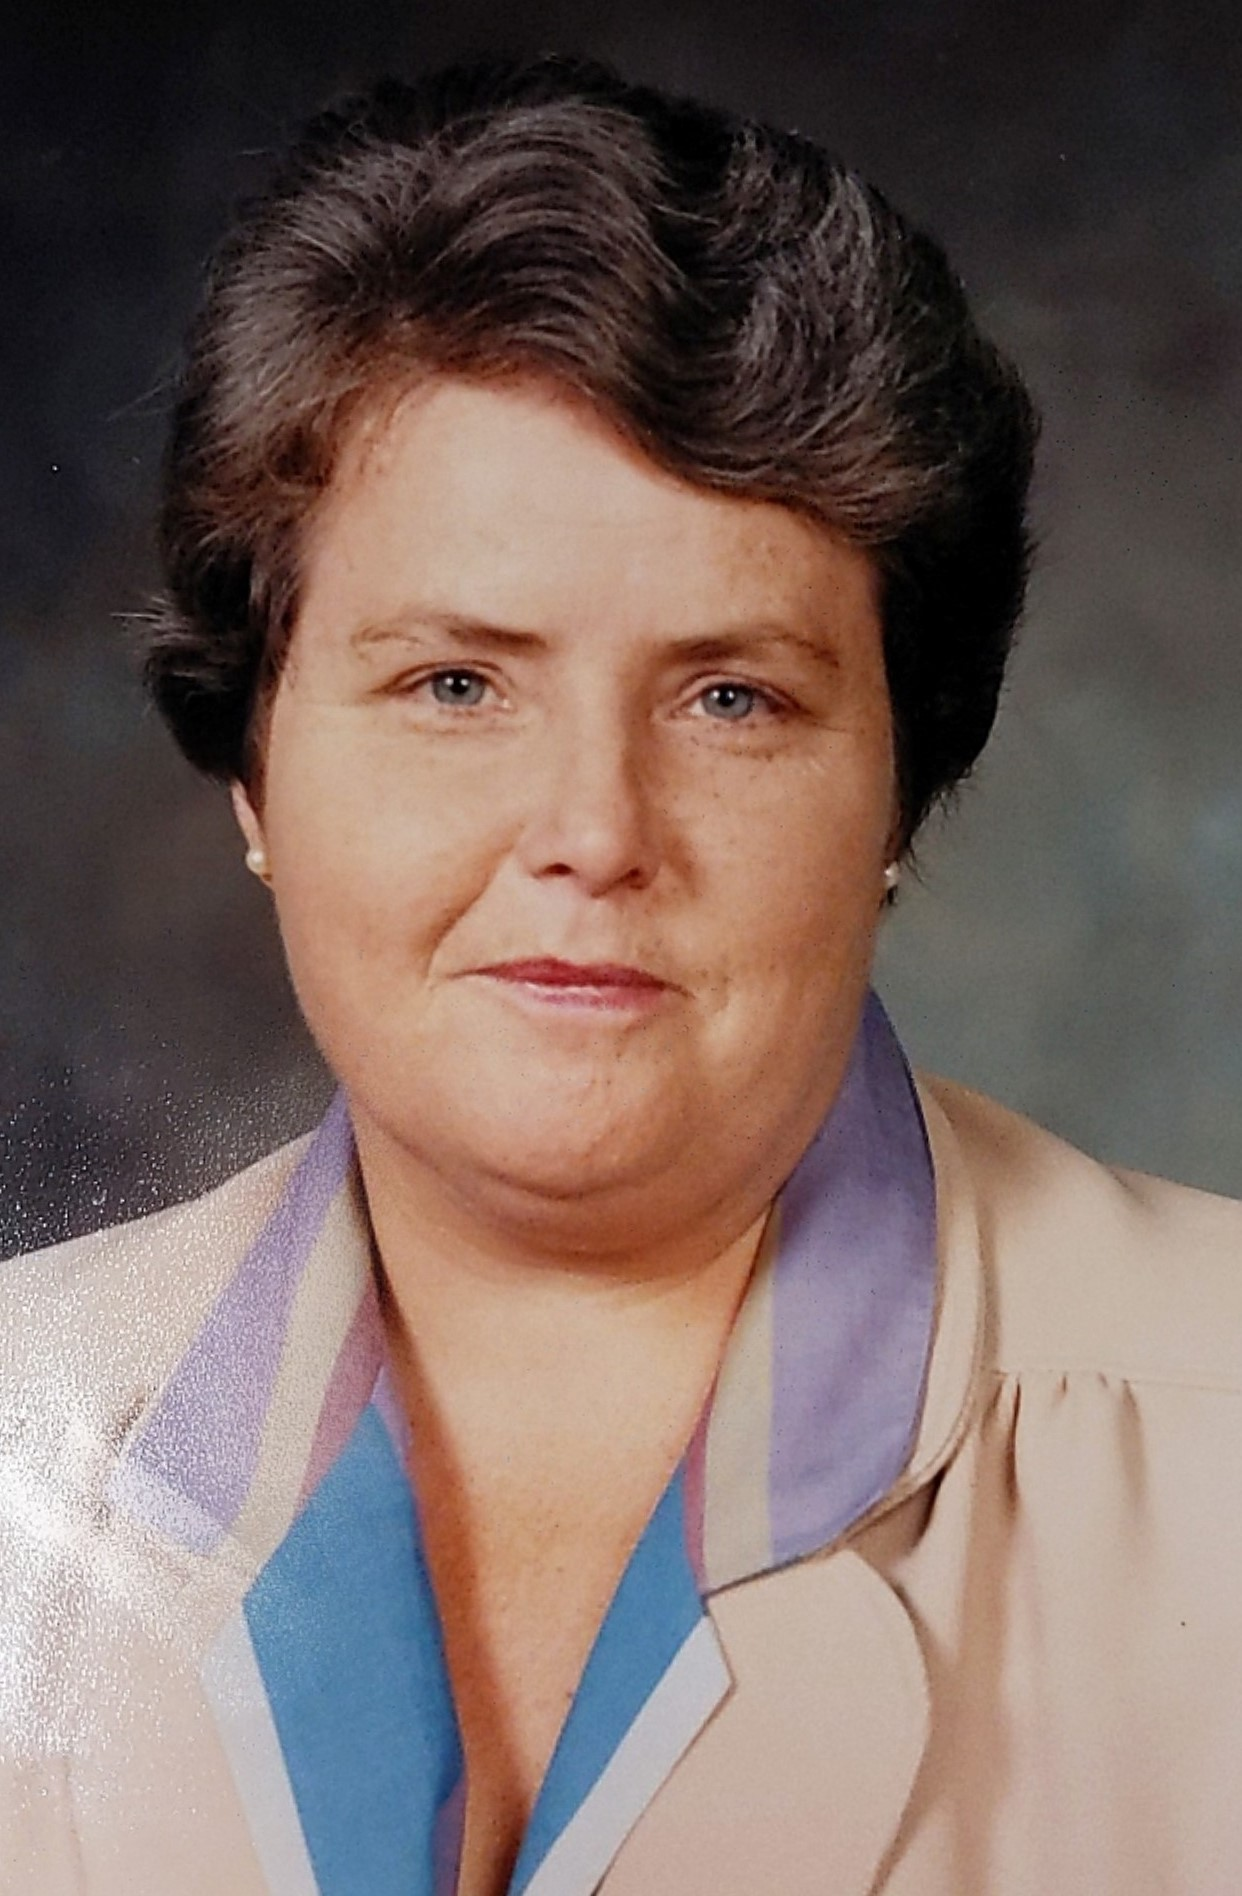 Obituary image of Marilyn Reeder Smith